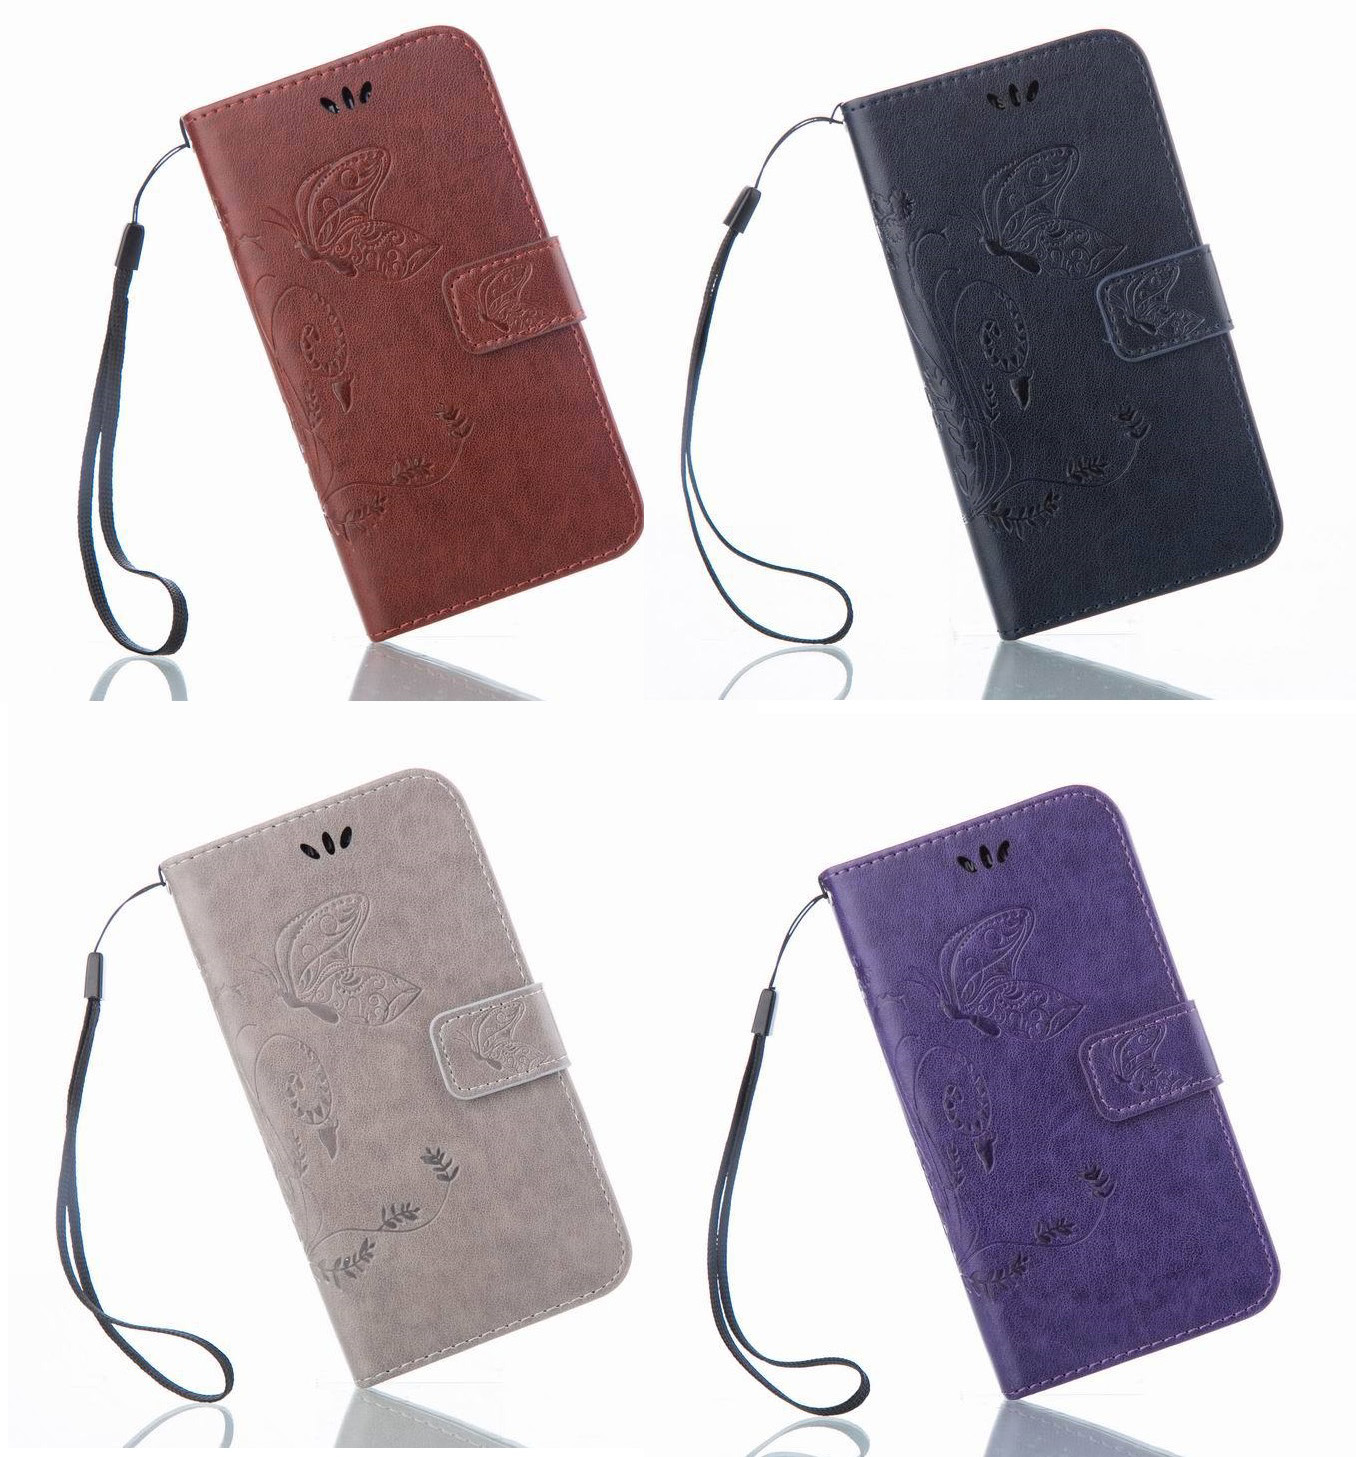 Flip Cases Phone Bags & Cases Ailishi Flip Pu Leather Case For Irbis Sp06 Case High Quality Cartoon Painted Protective Cover Skin In Stock Various Styles